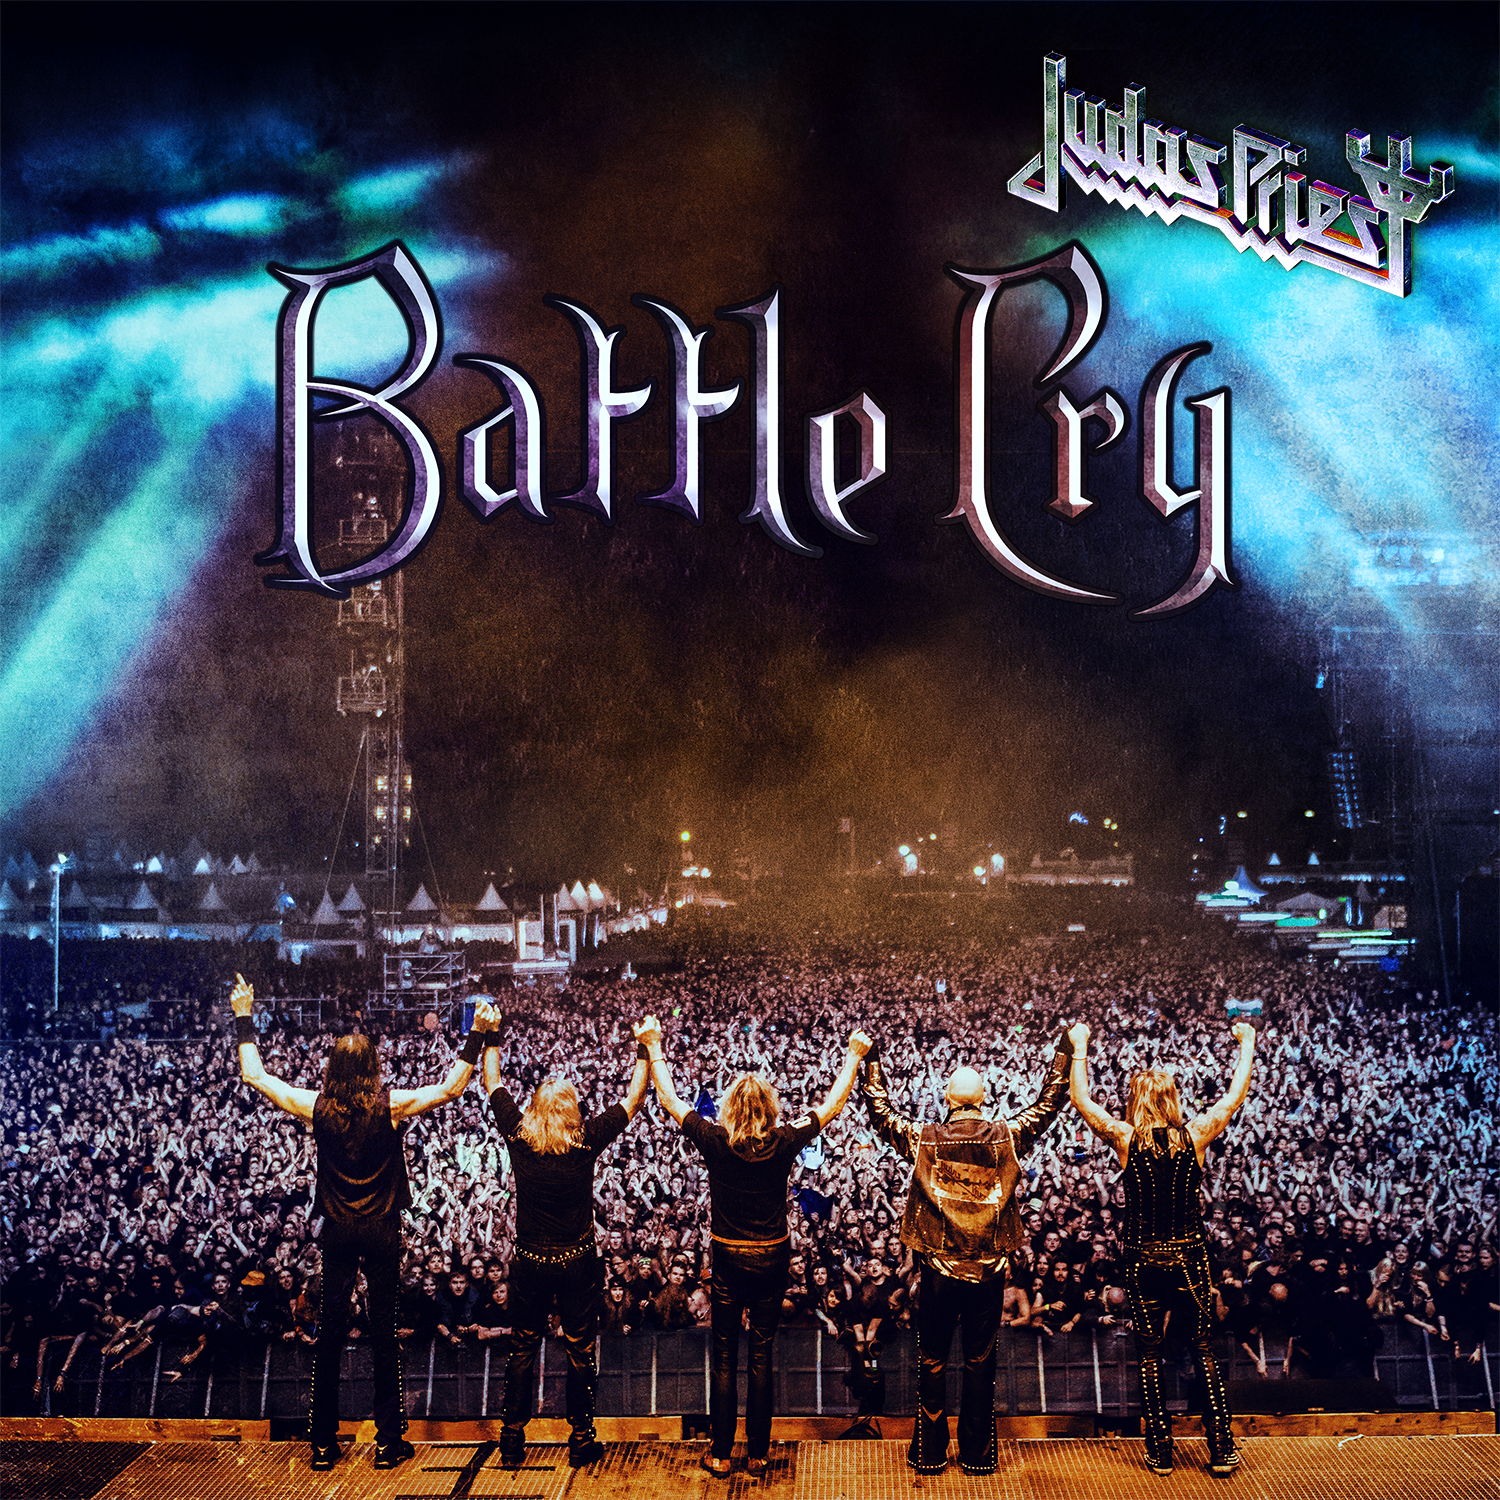 Judas-Priest-Battle-Cry